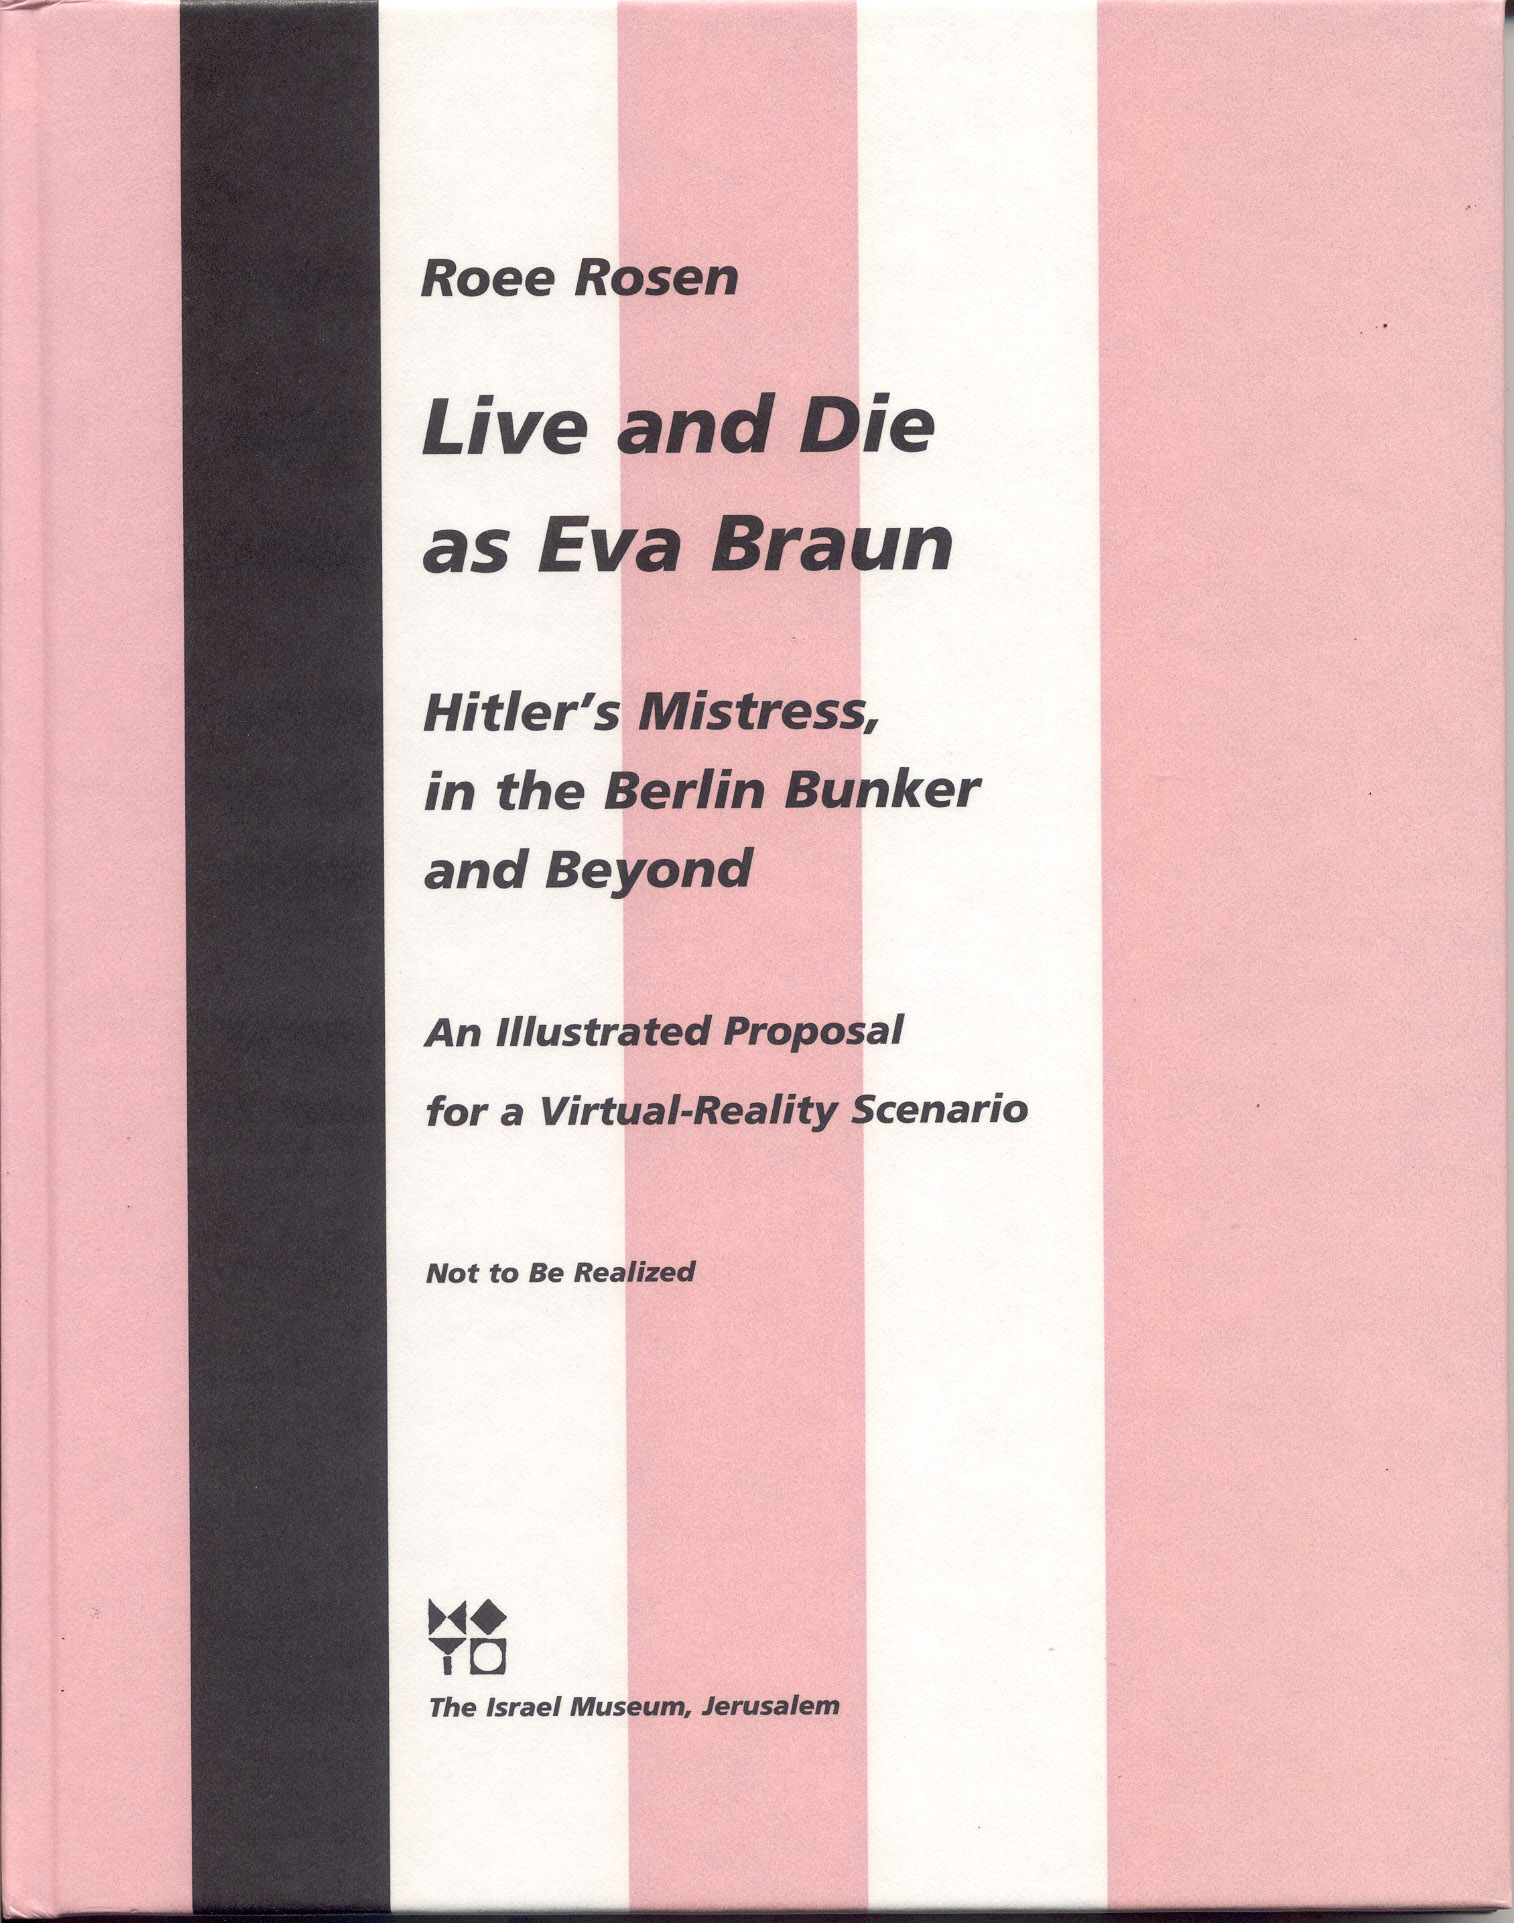 - Roee Rosen, Live and Die as Eva Braun, 1995 – 1997, full text in English.